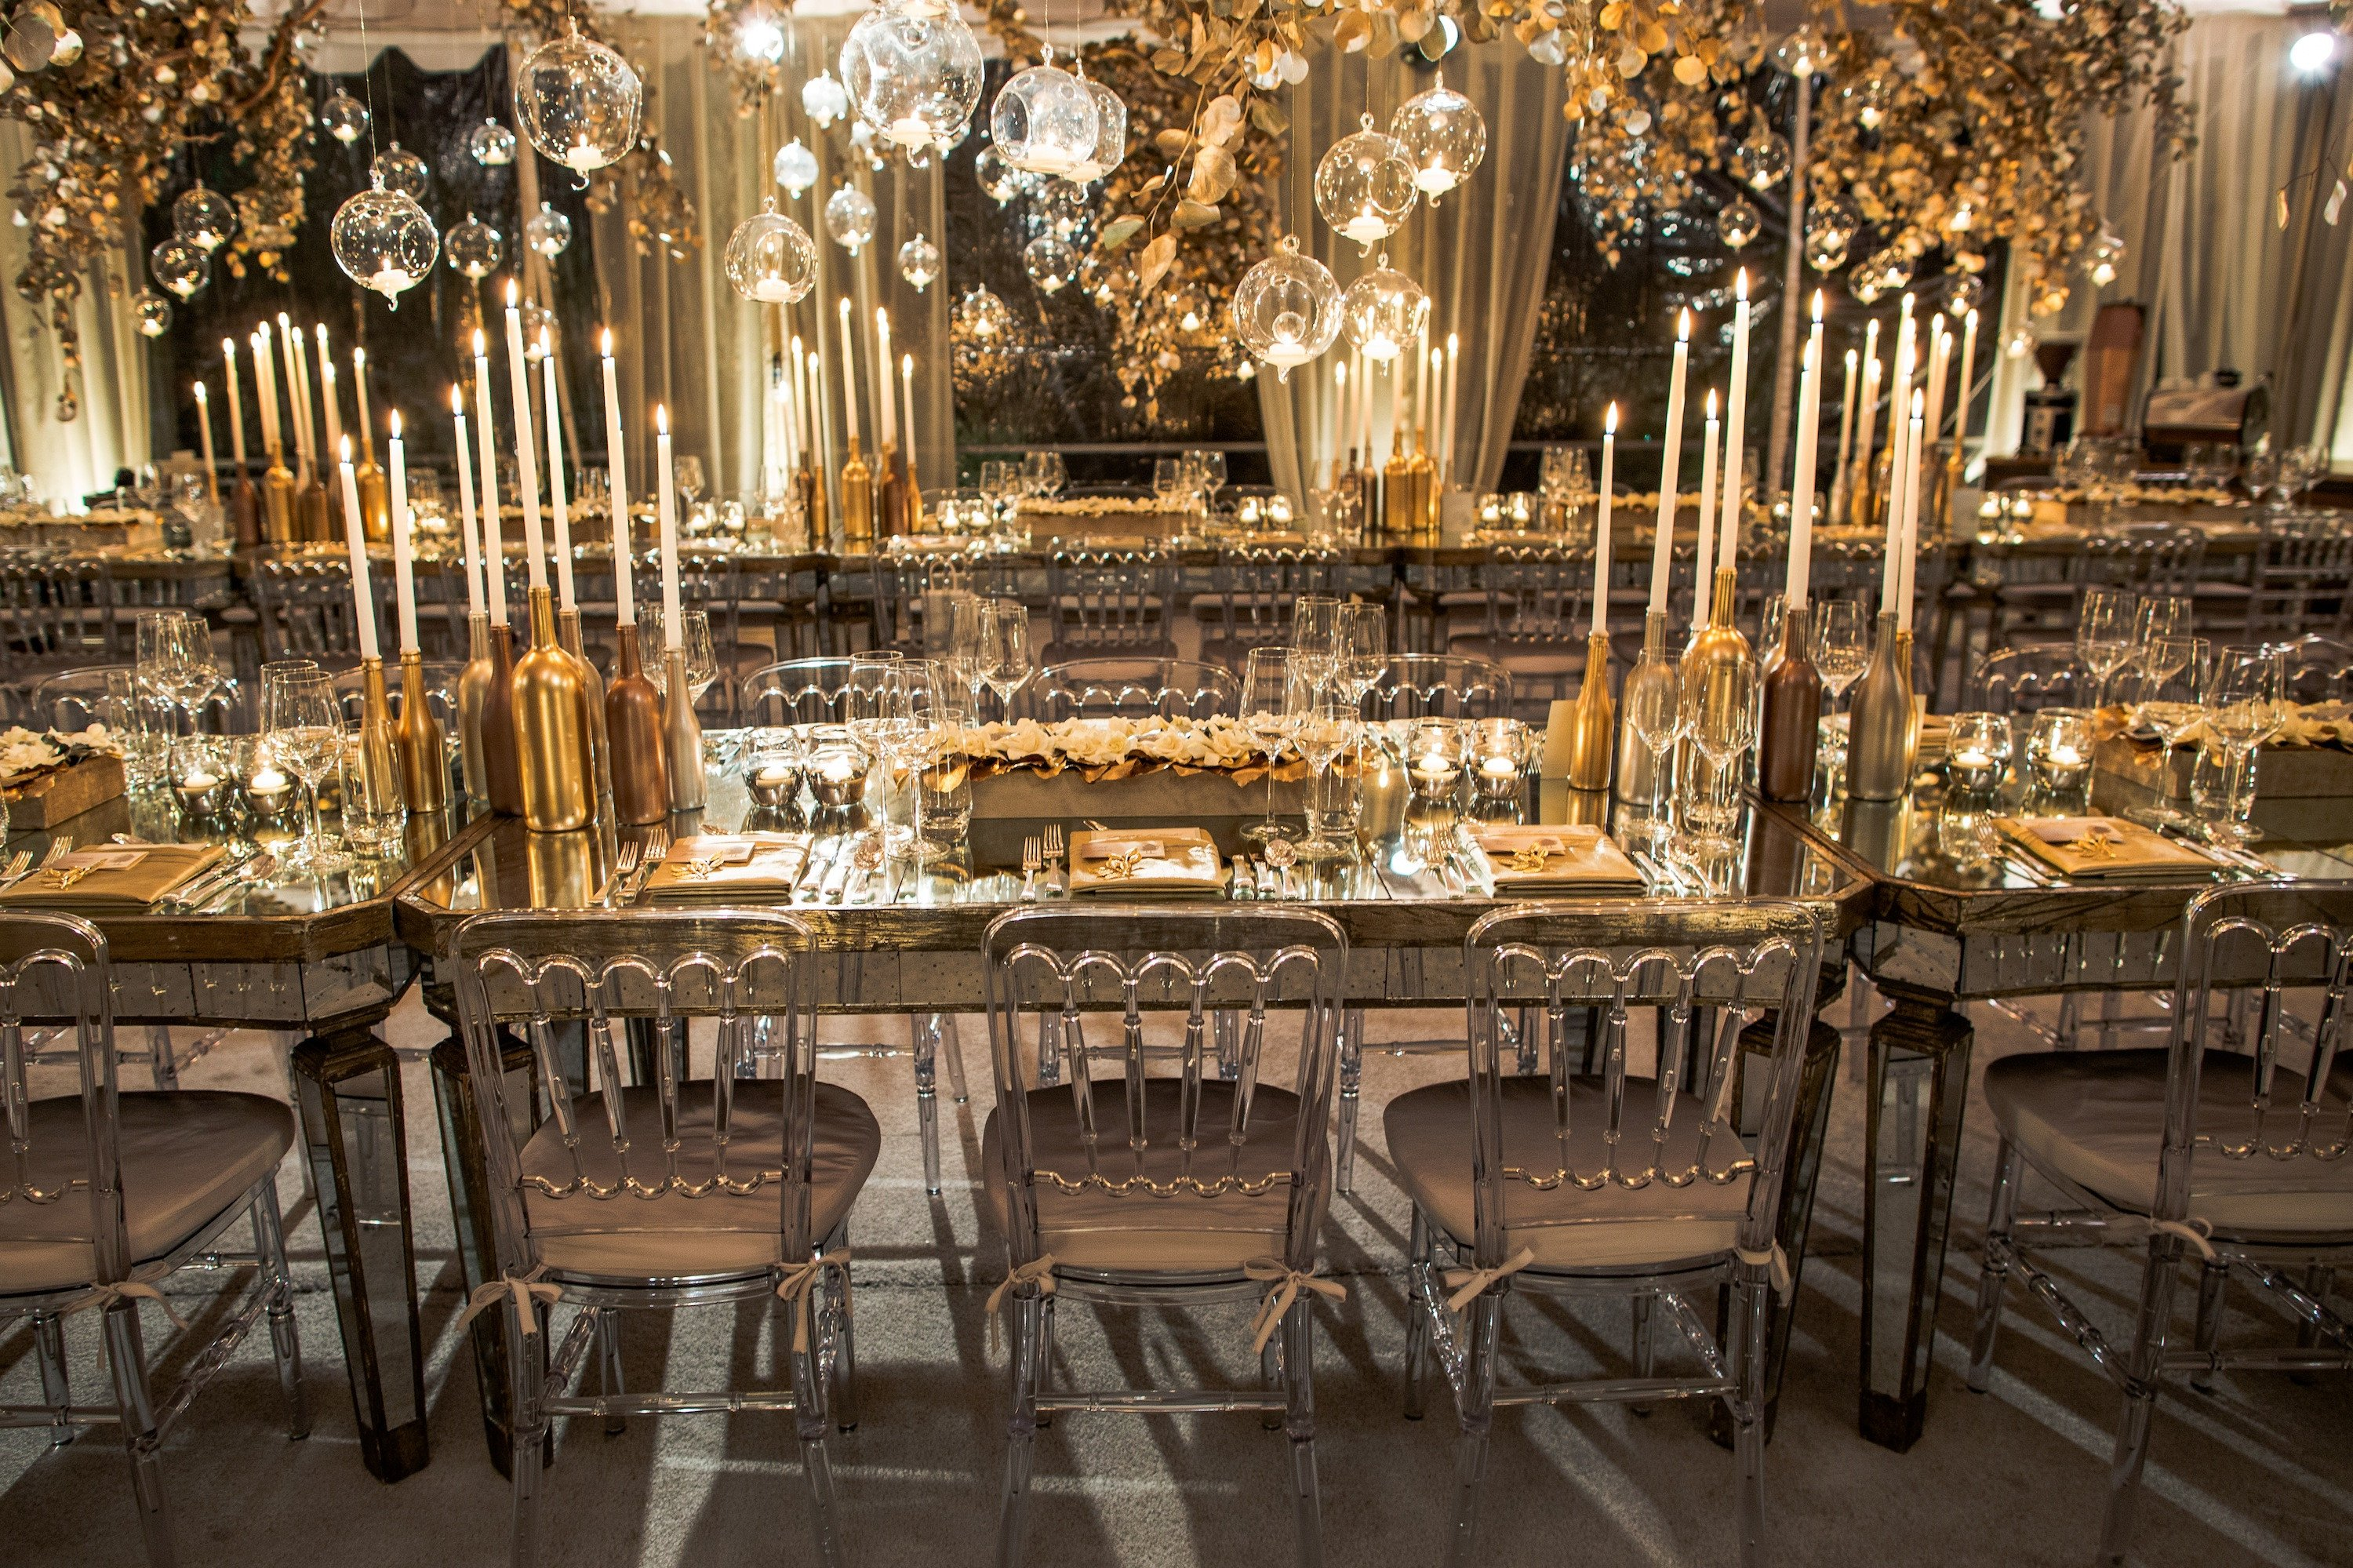 Gold and Silver Wedding Decor Luxury Wedding Inspiration Mixed Metals